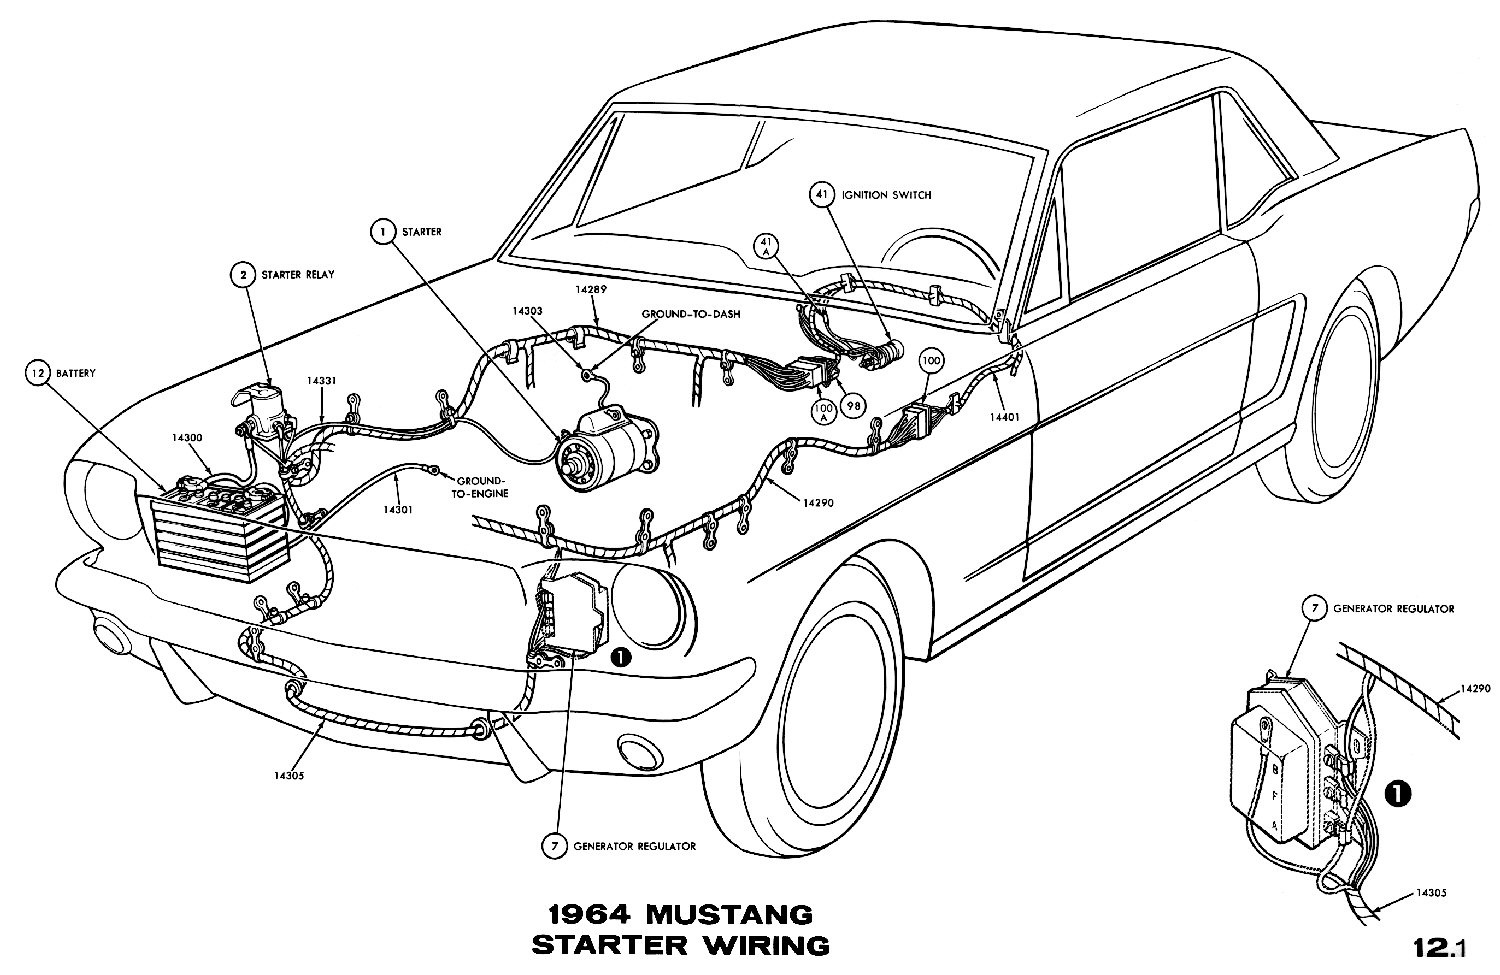 1964 Mustang Wiring Diagrams Average Joe Restoration 67 Corvette Headlight Motor Diagram Sm1964d Starter Pictorial Or Schematic